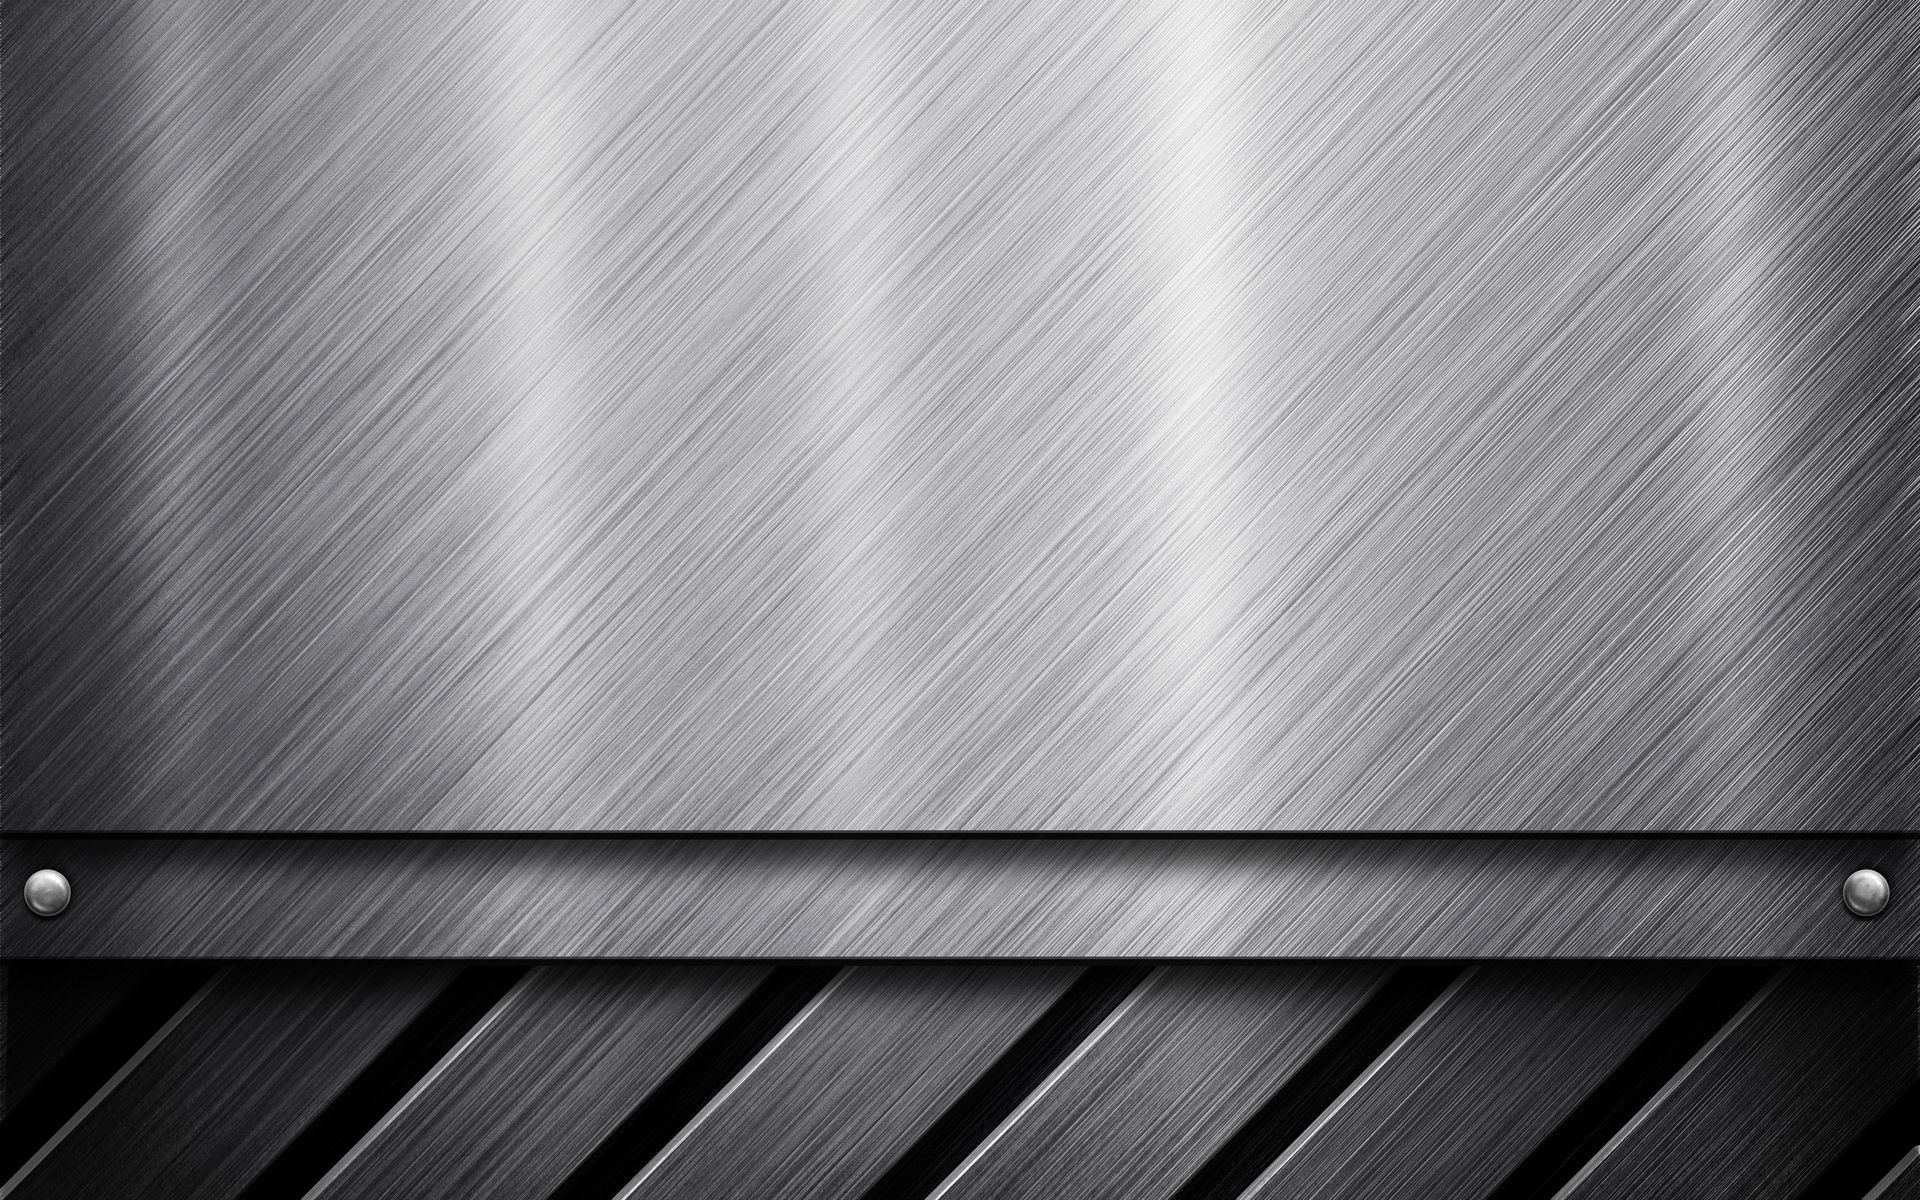 Metal Backgrounds HD Wallpaper 19201200 Metal Backgrounds HD 35 1920x1200